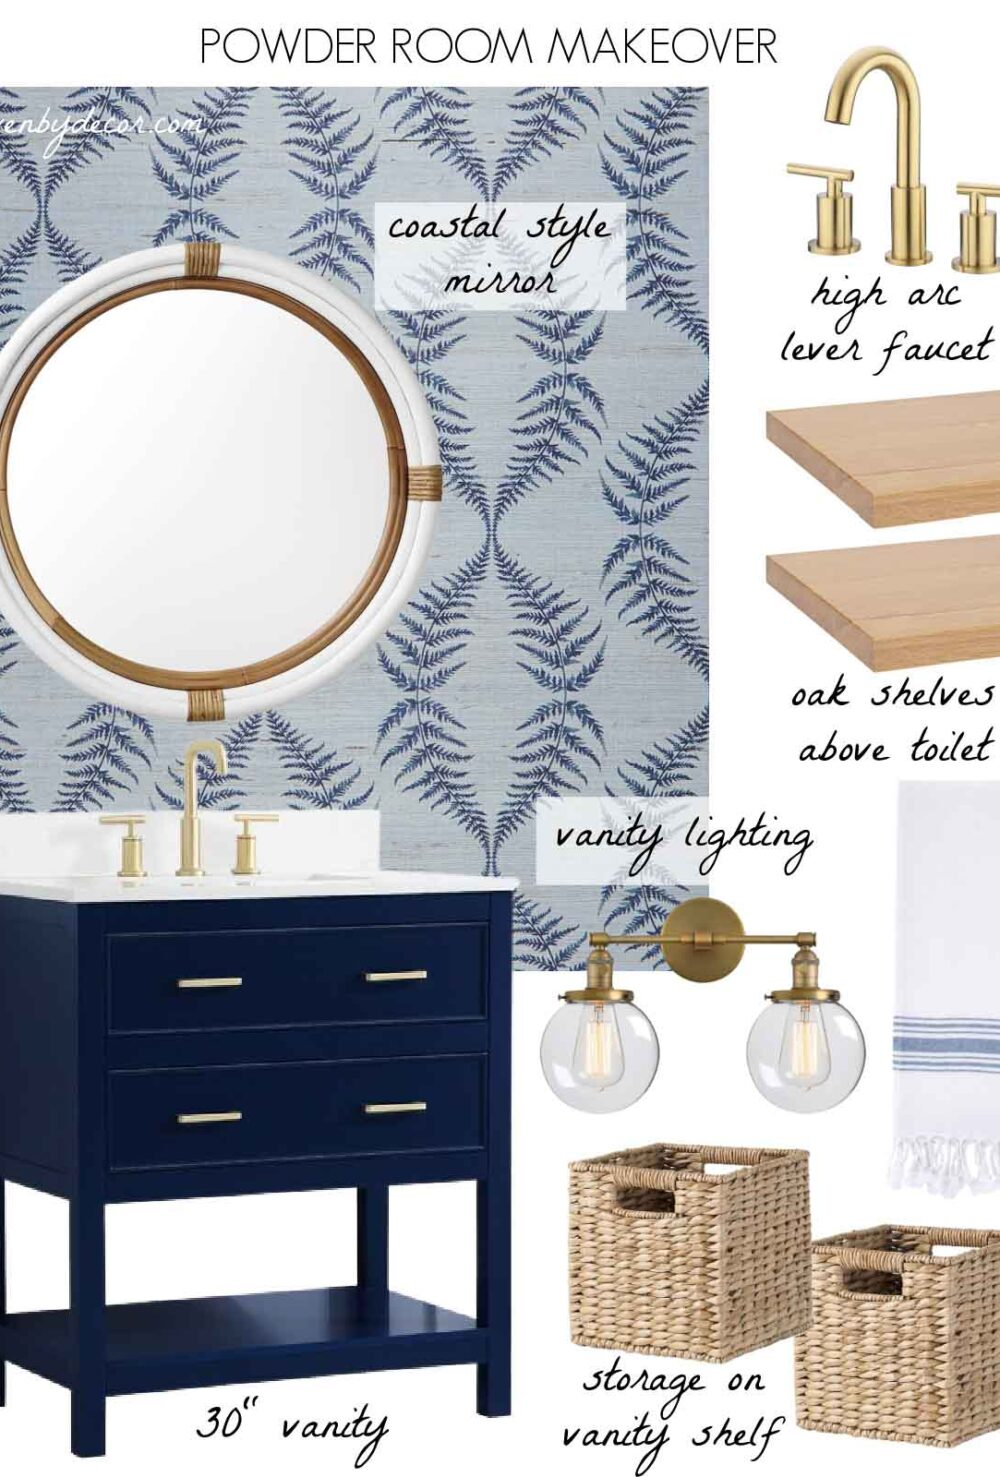 Our powder room design including our vanity, mirror, faucet, & more